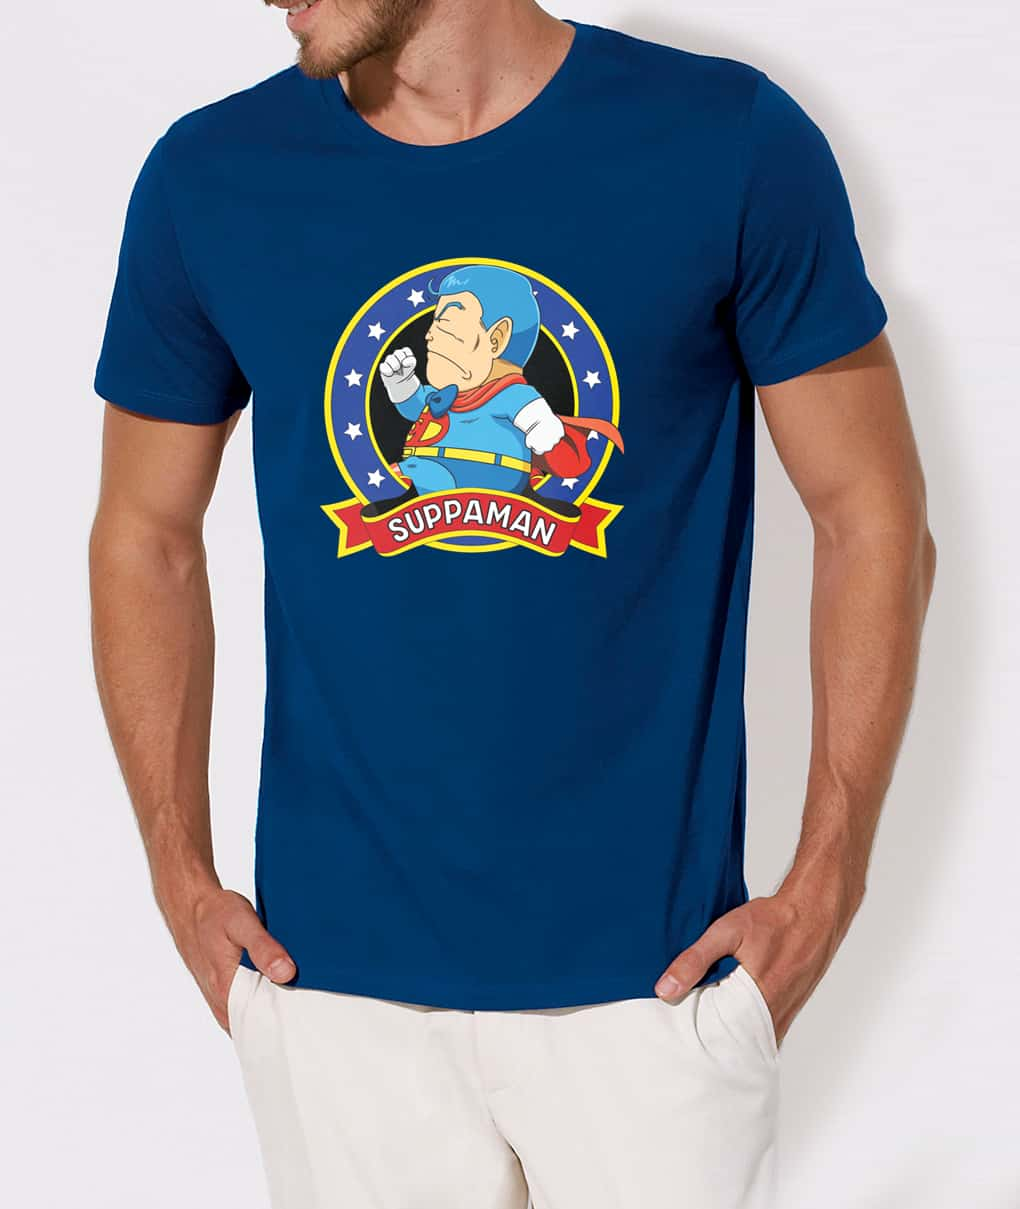 SUPPAMAN CORRIENDO CAMISETA AZUL CHICO TALLA S DR SLUMP